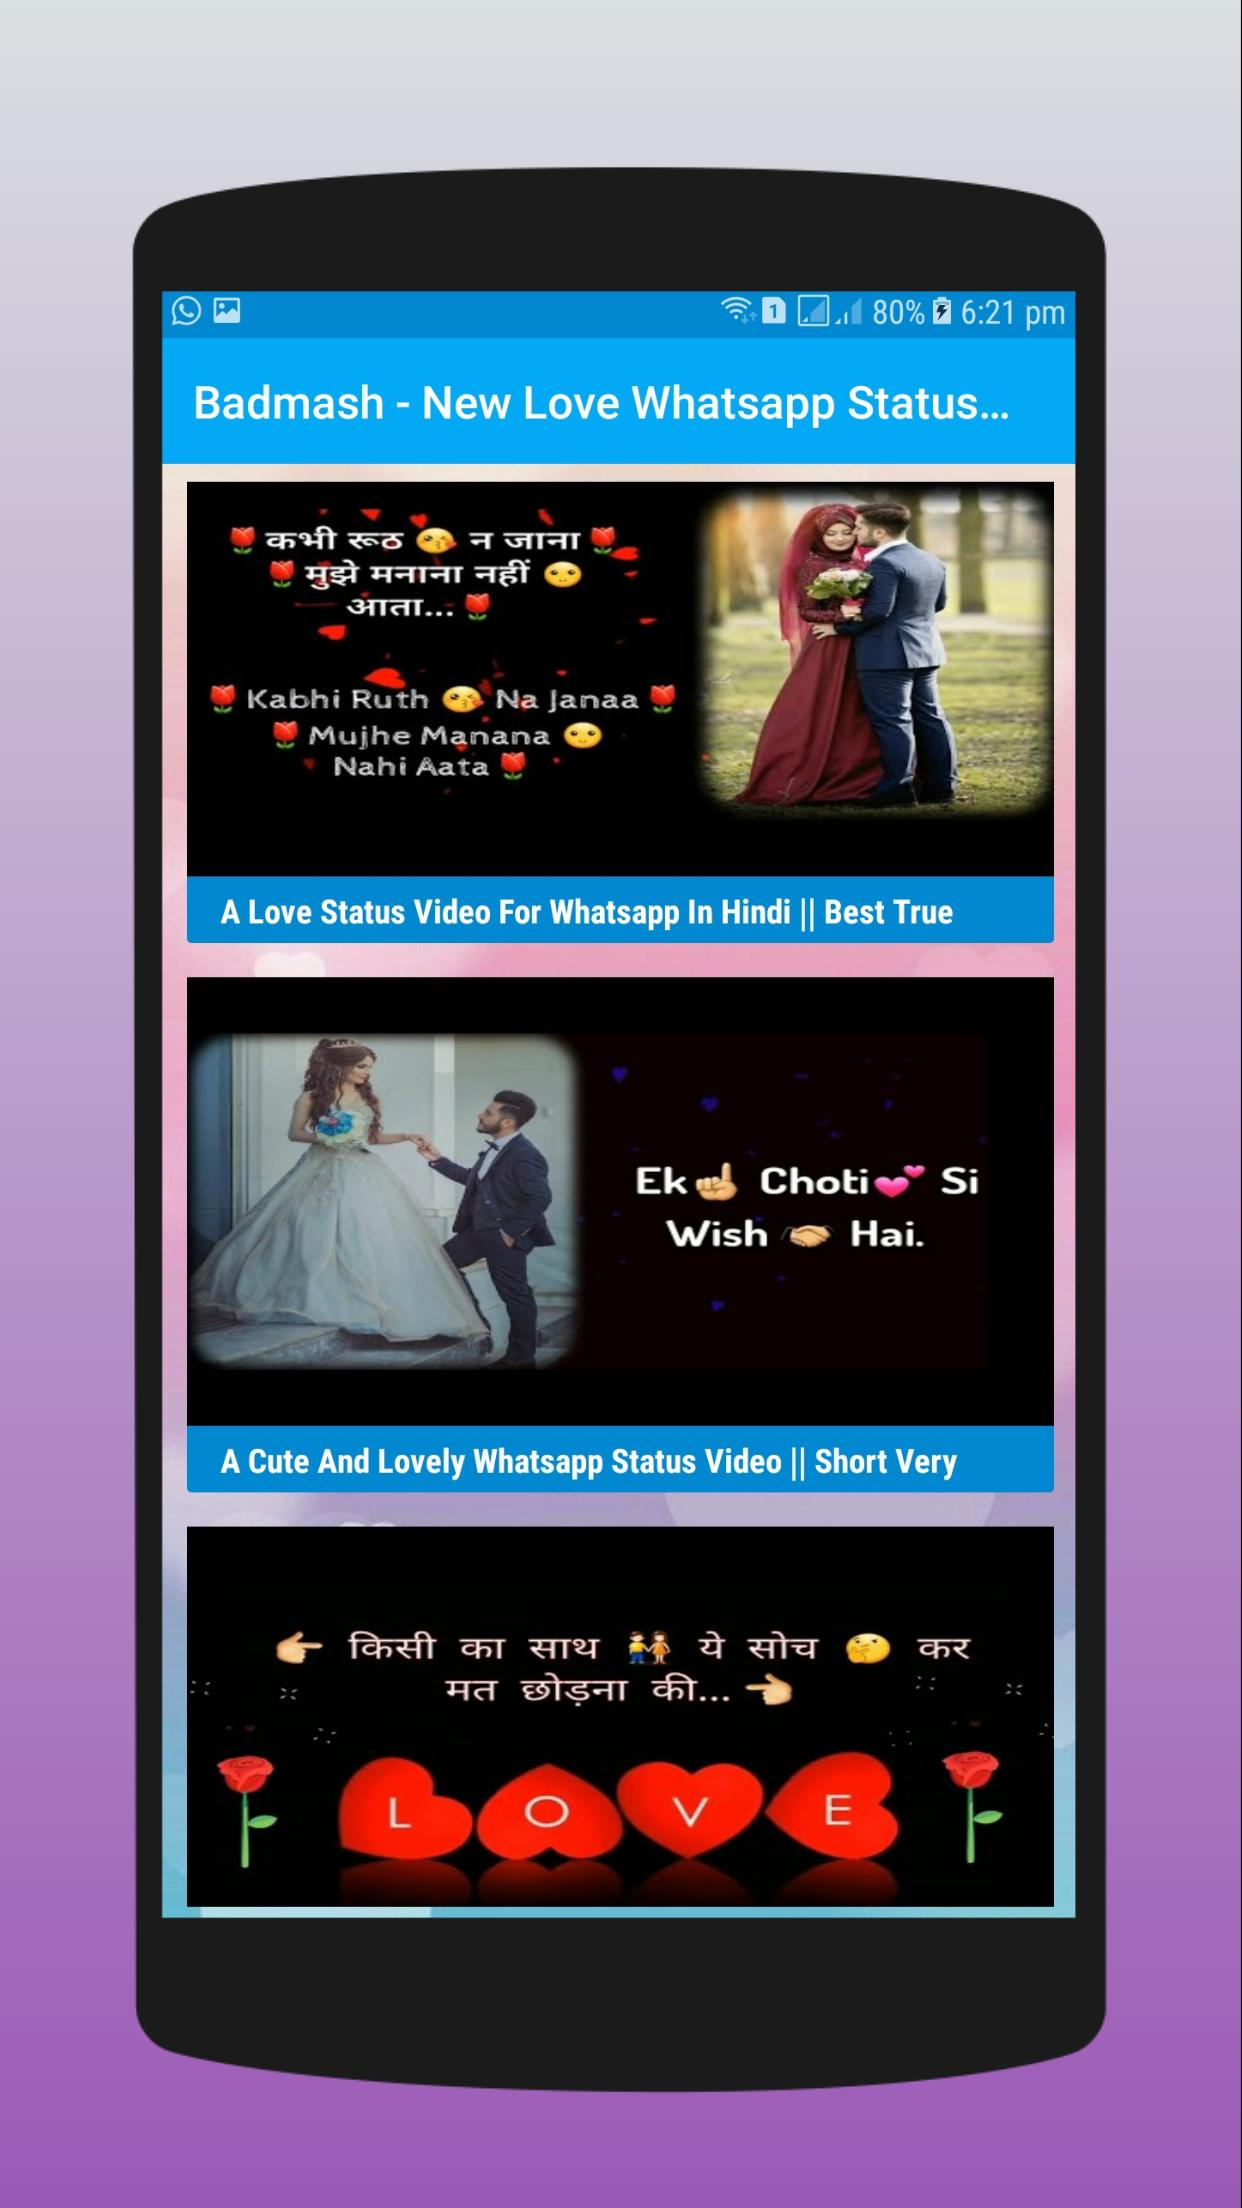 Badmash New Love Whatsapp Status Video And Dp For Android